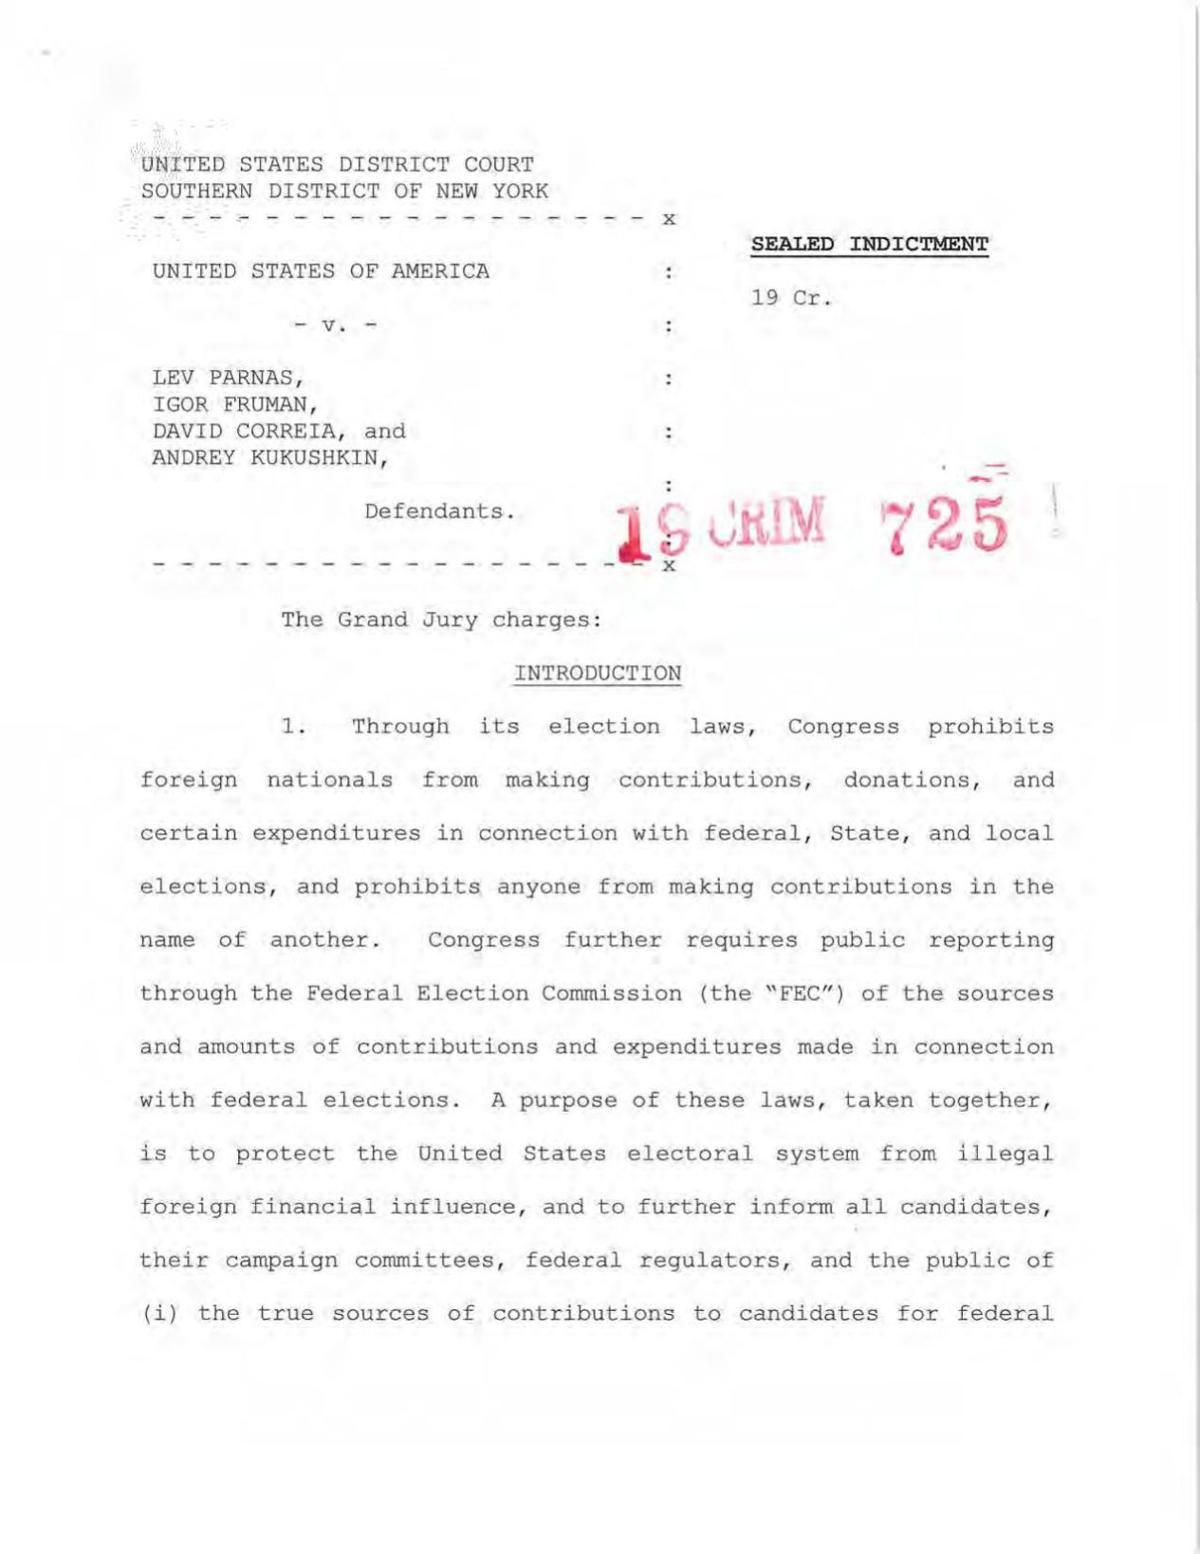 READ: Indictments against Parnas and Fruman